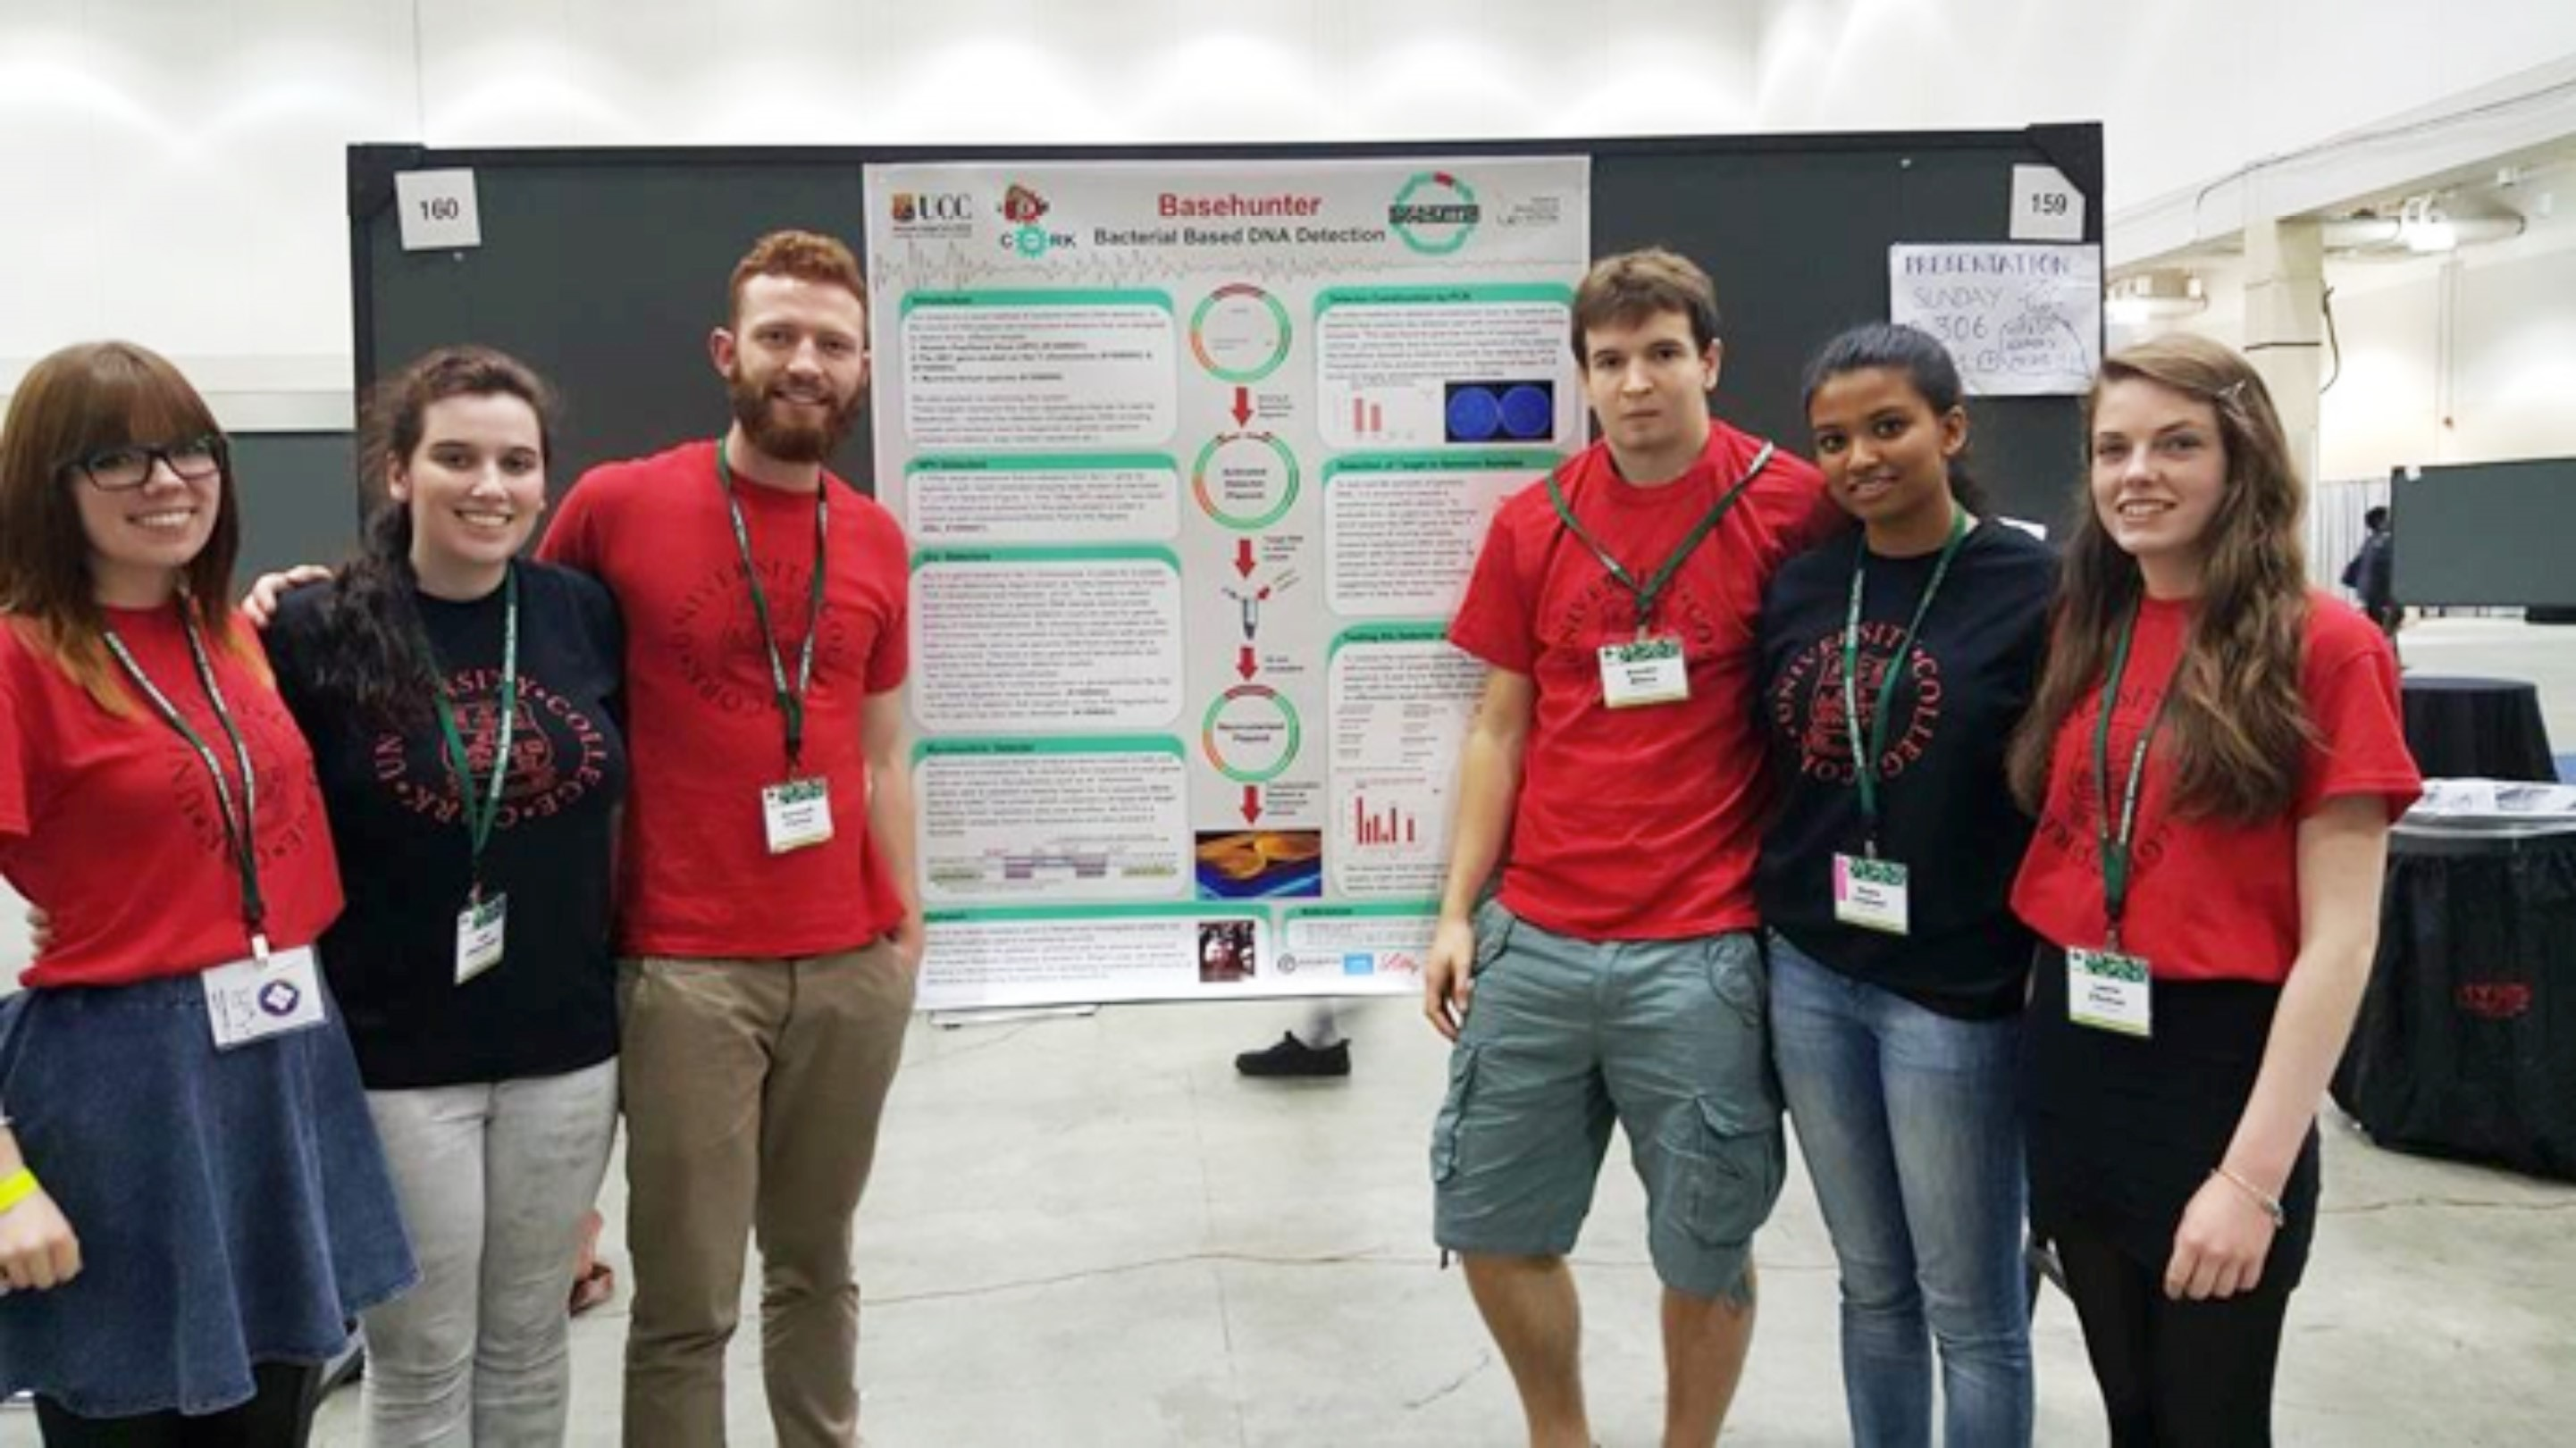 UCC Students win gold in Synthetic Biology competition